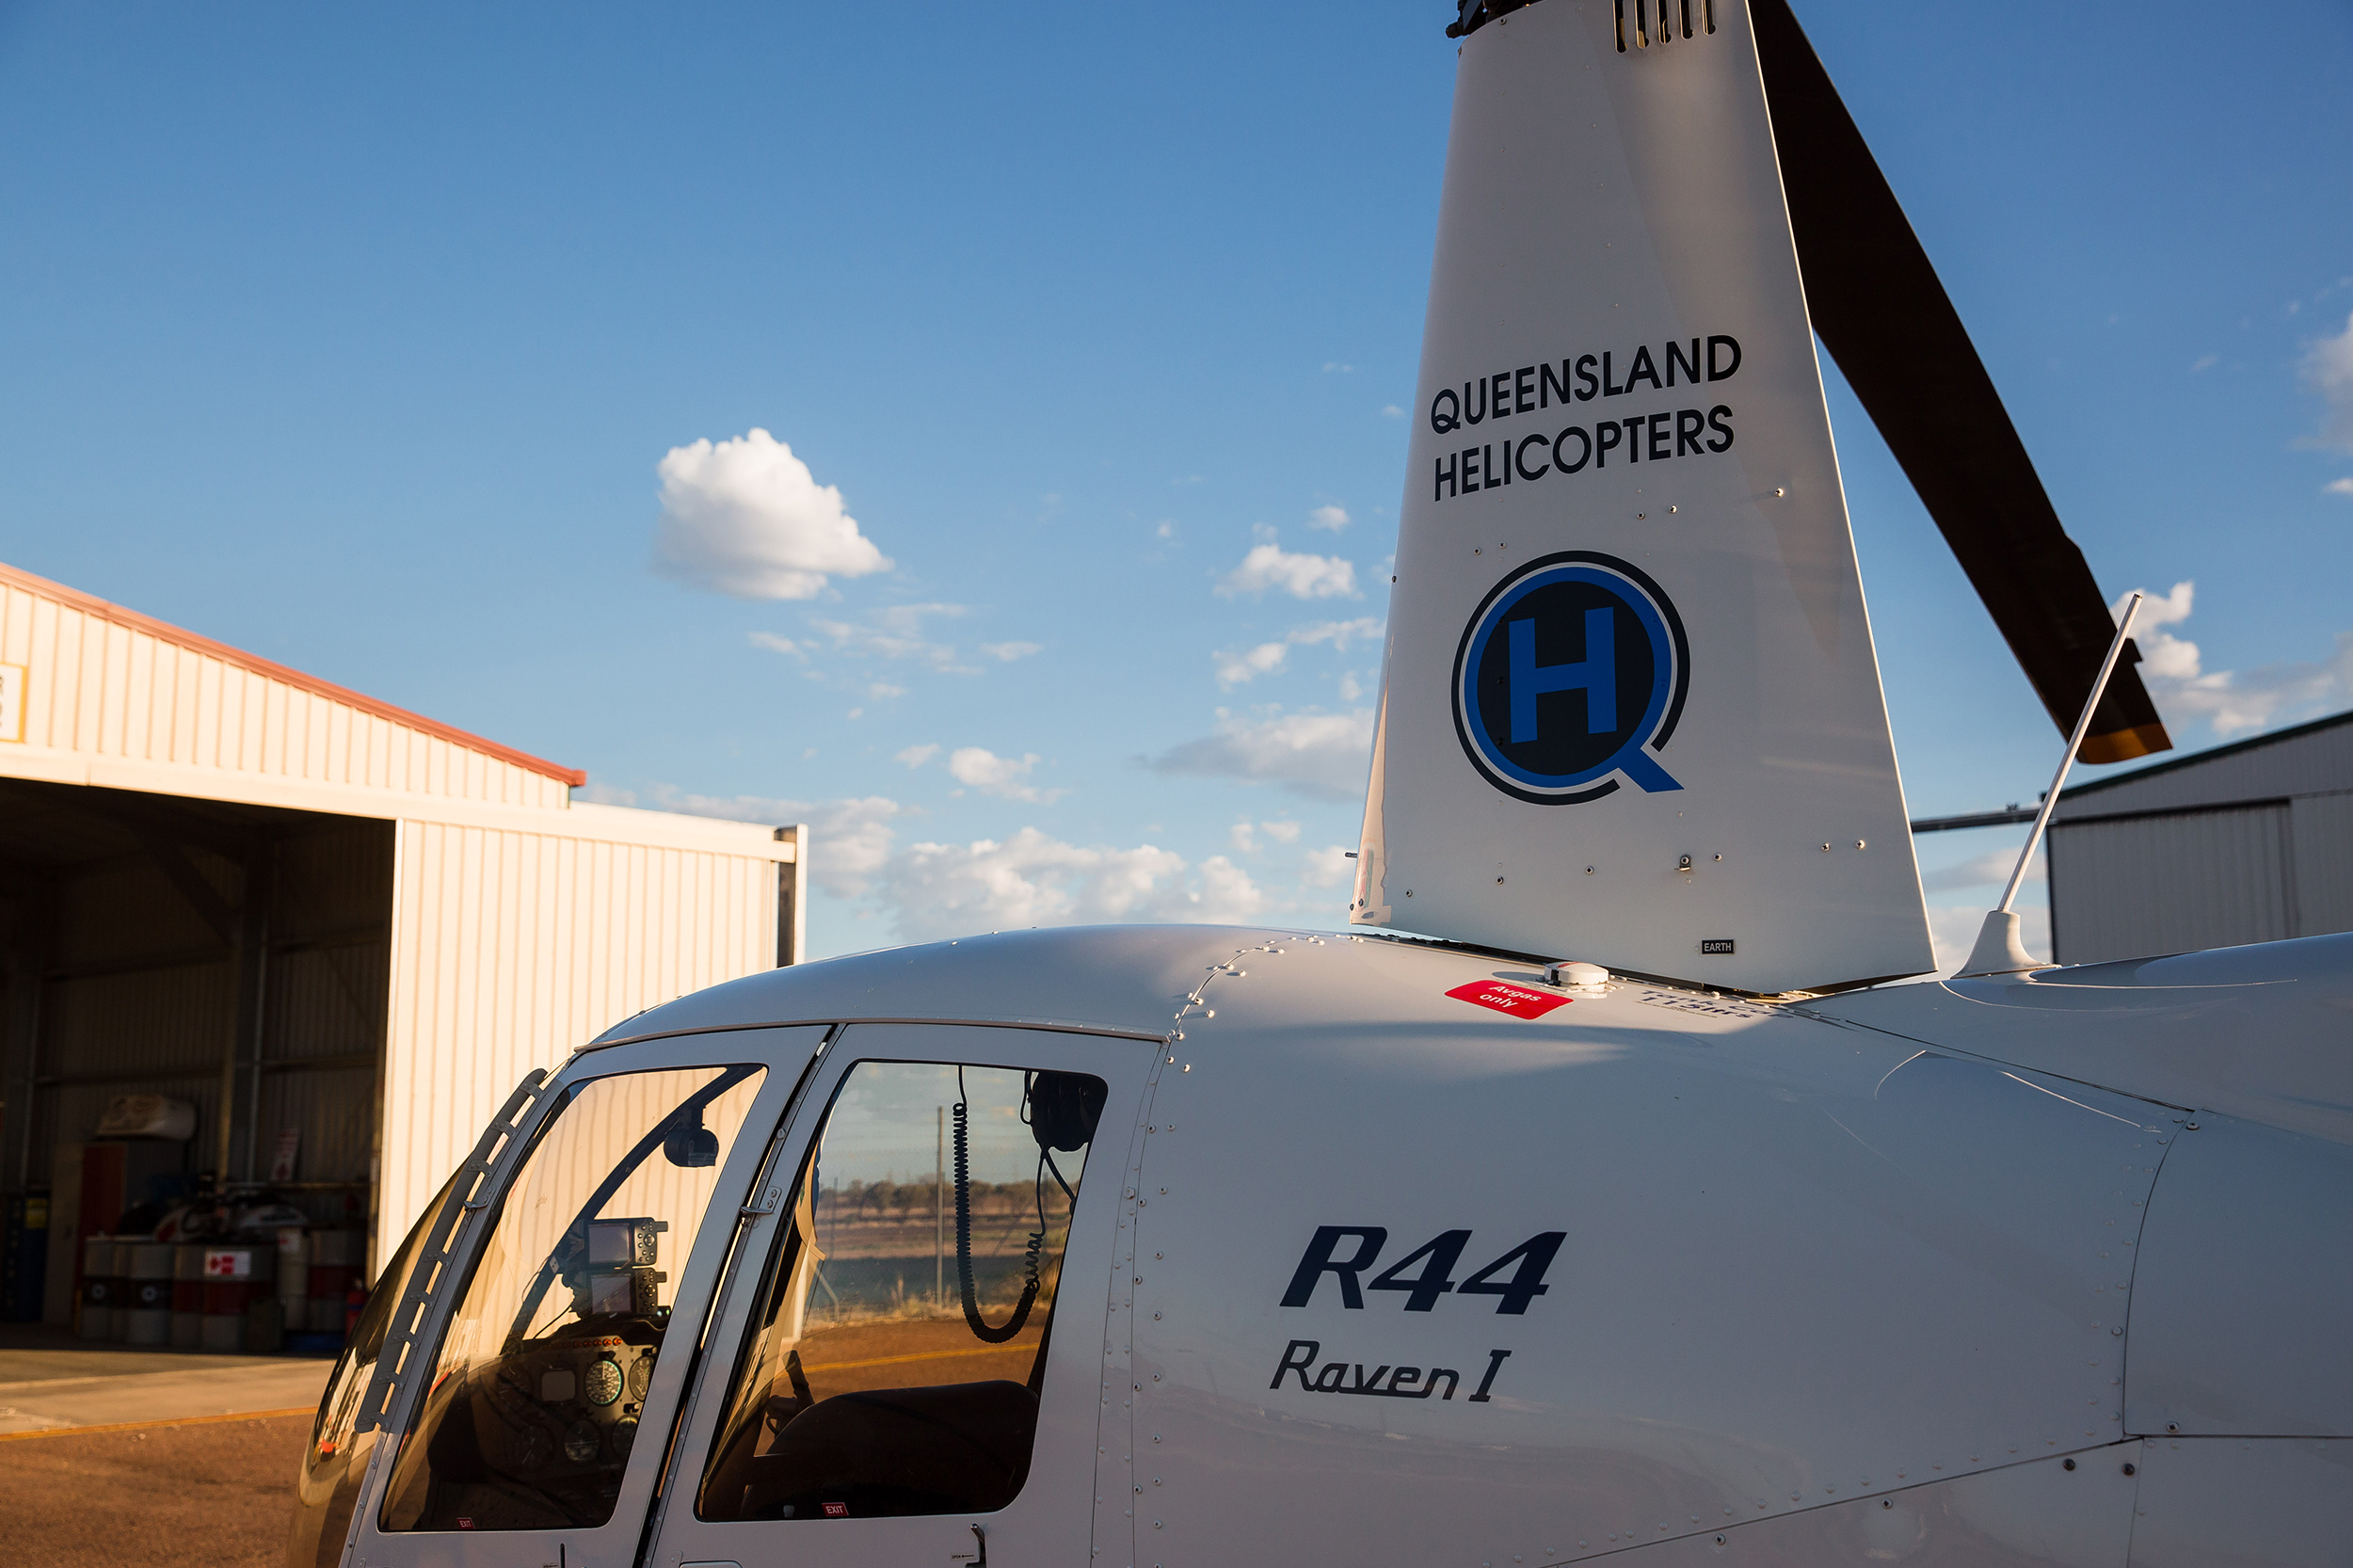 Queensland Helicopters - fleet and history R44 Raven I